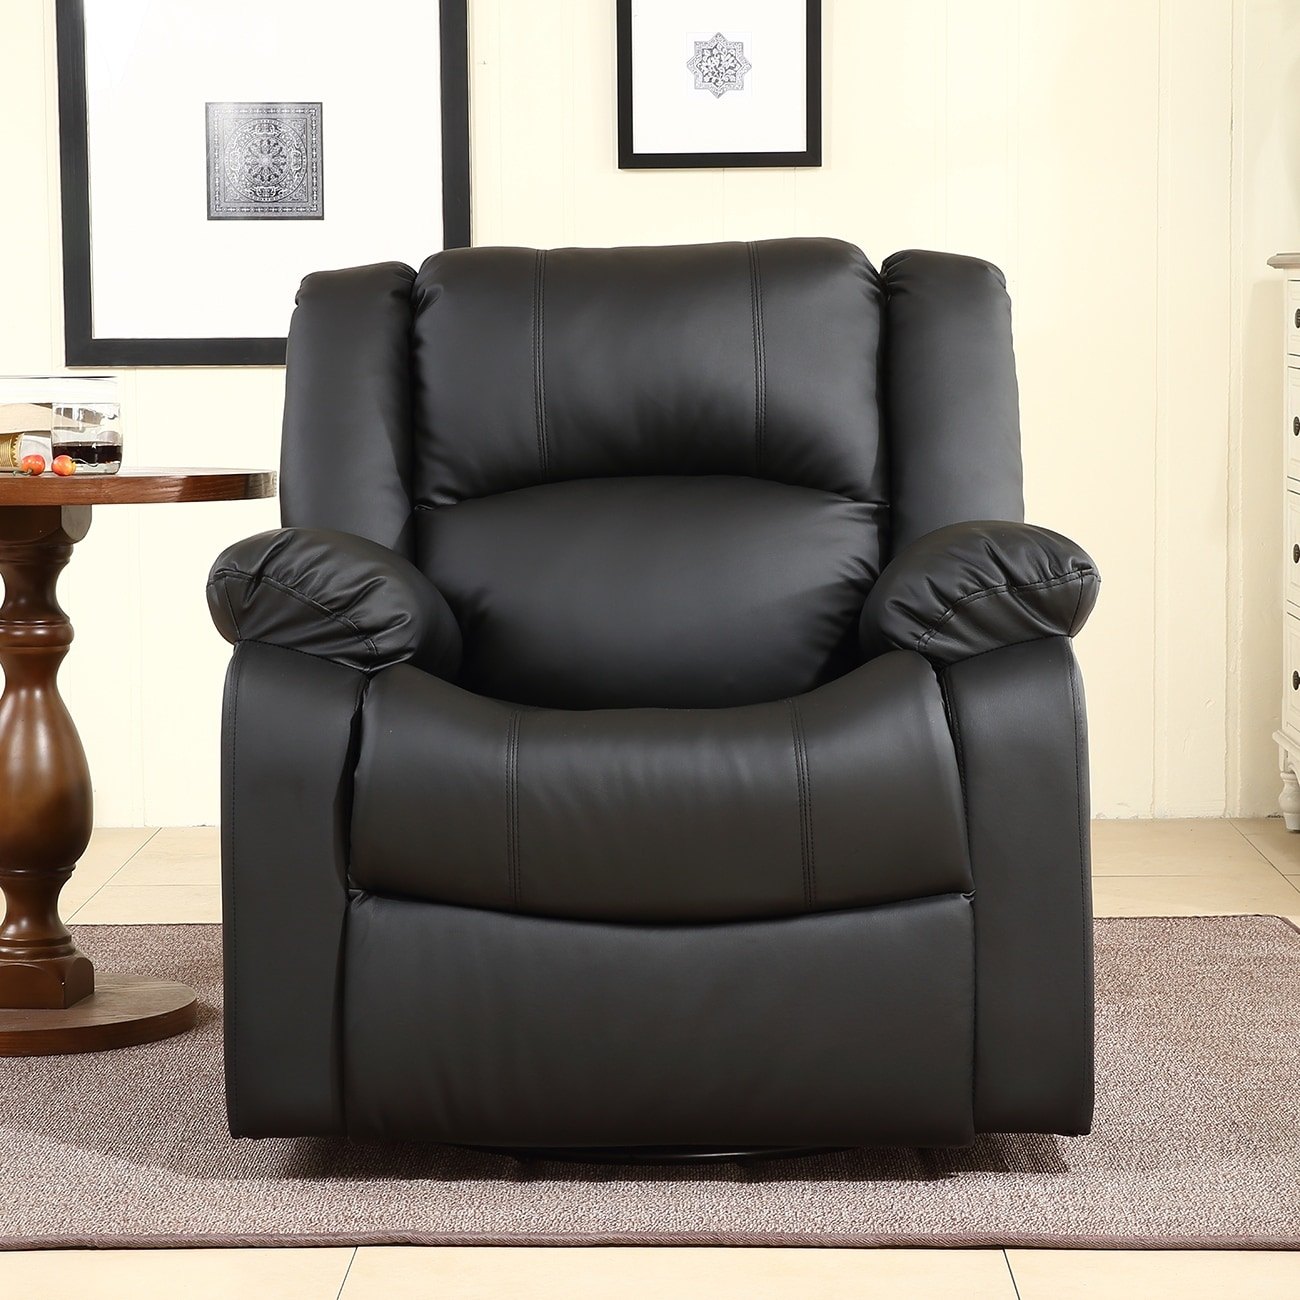 Charmant Shop Belleze Swivel Glider Rocker Recliner Chair Overstuffed Armrest And  Backrest Faux Leather, Black   Free Shipping Today   Overstock.com    17833256